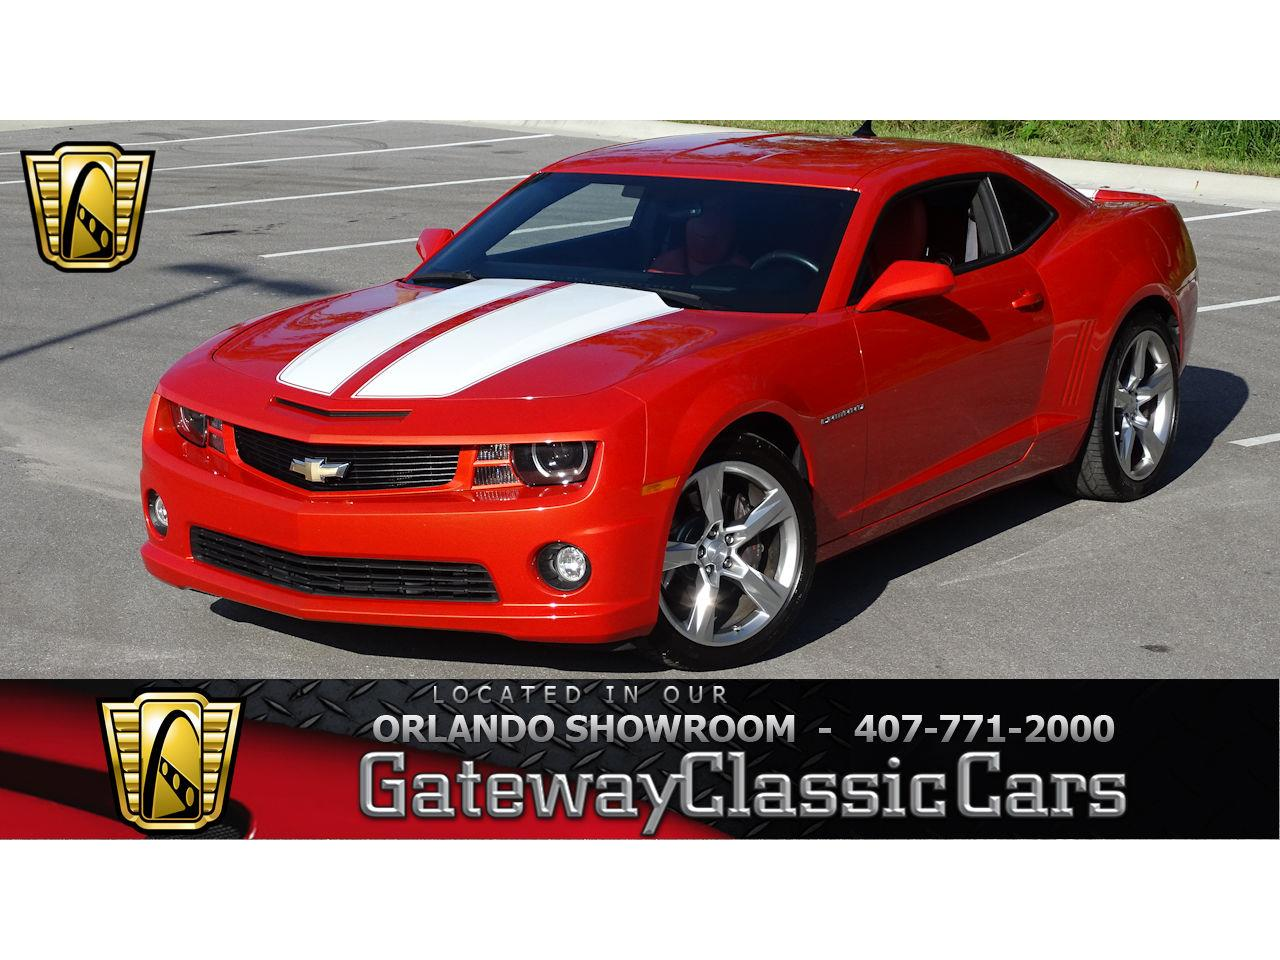 2011 Camaro For Sale >> 2011 Chevrolet Camaro For Sale Classiccars Com Cc 1161352